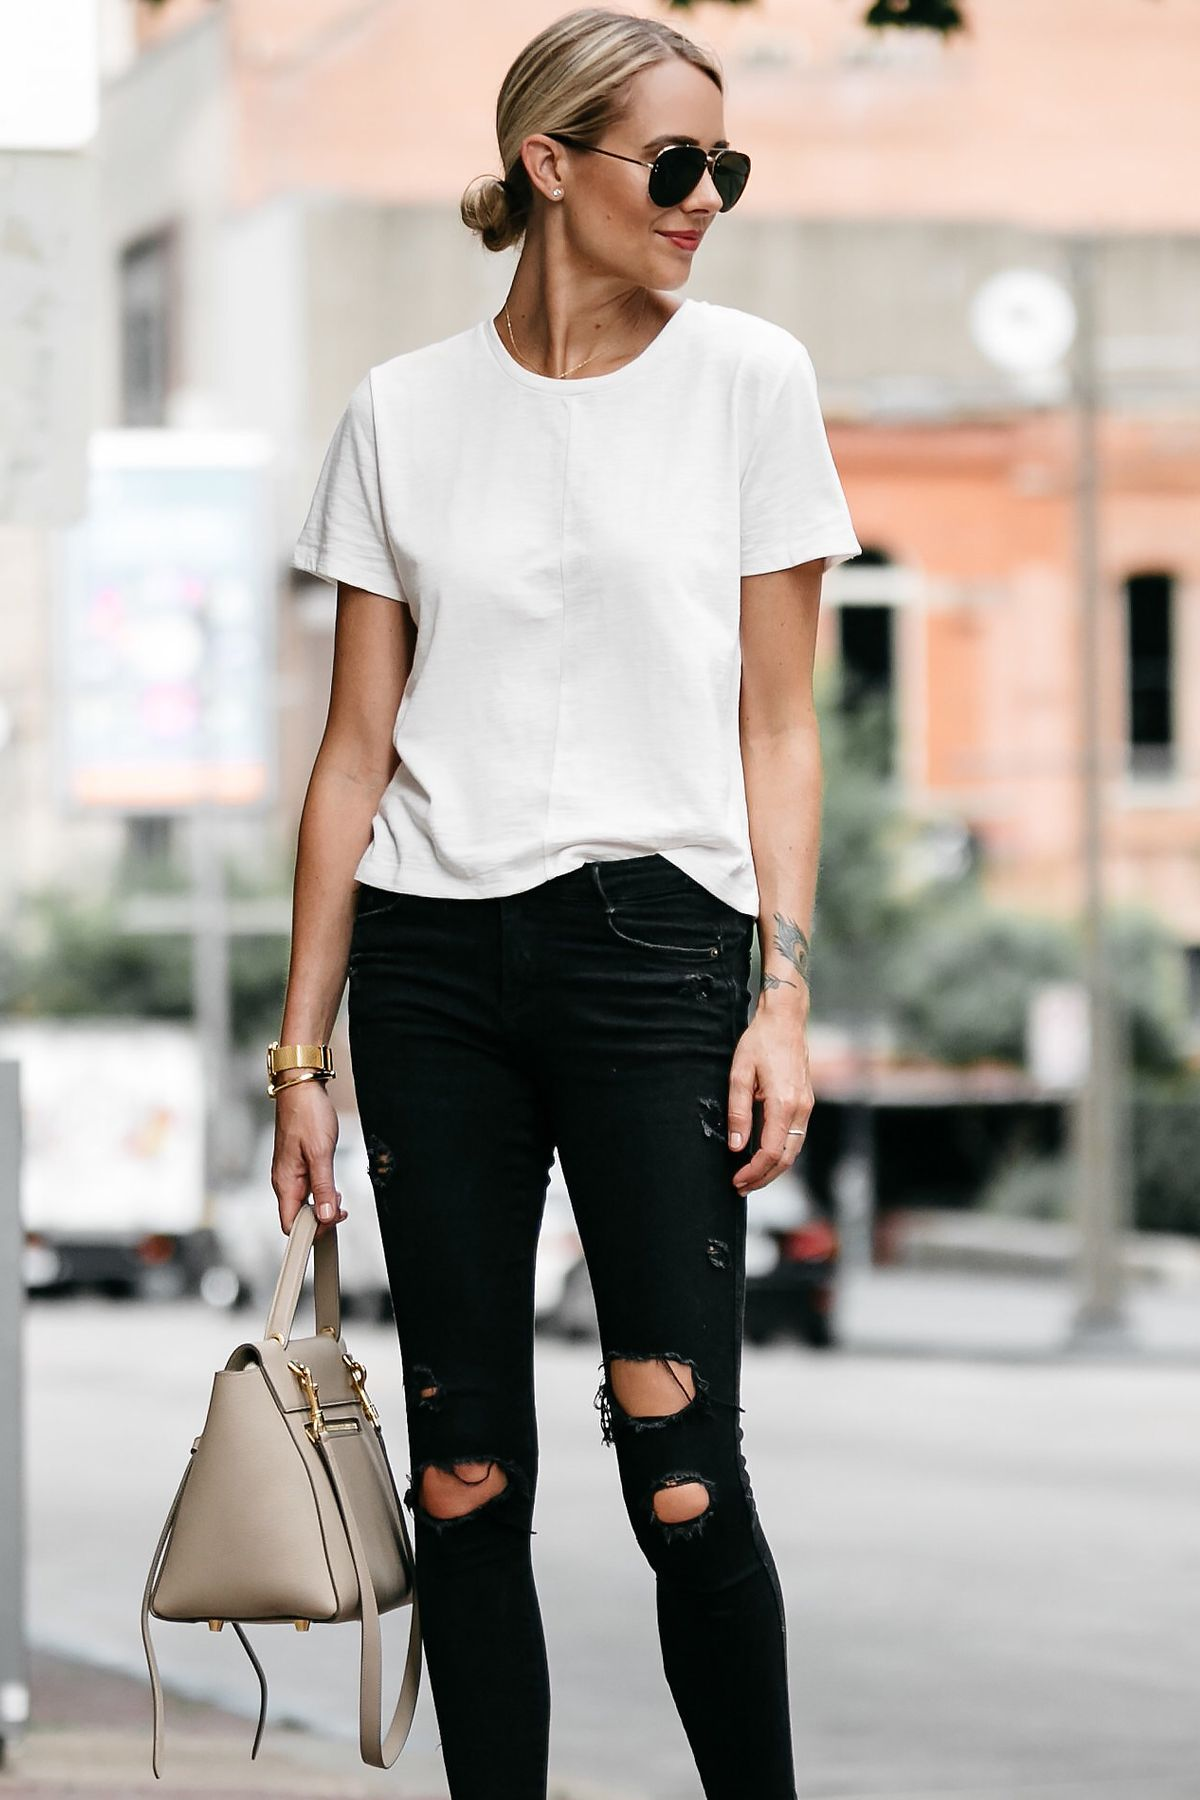 0a4e8ae3 Blonde woman wearing everlane white tshirt zara black ripped skinny jeans  outfit celine belt back street style dallas blogger fashion blogger